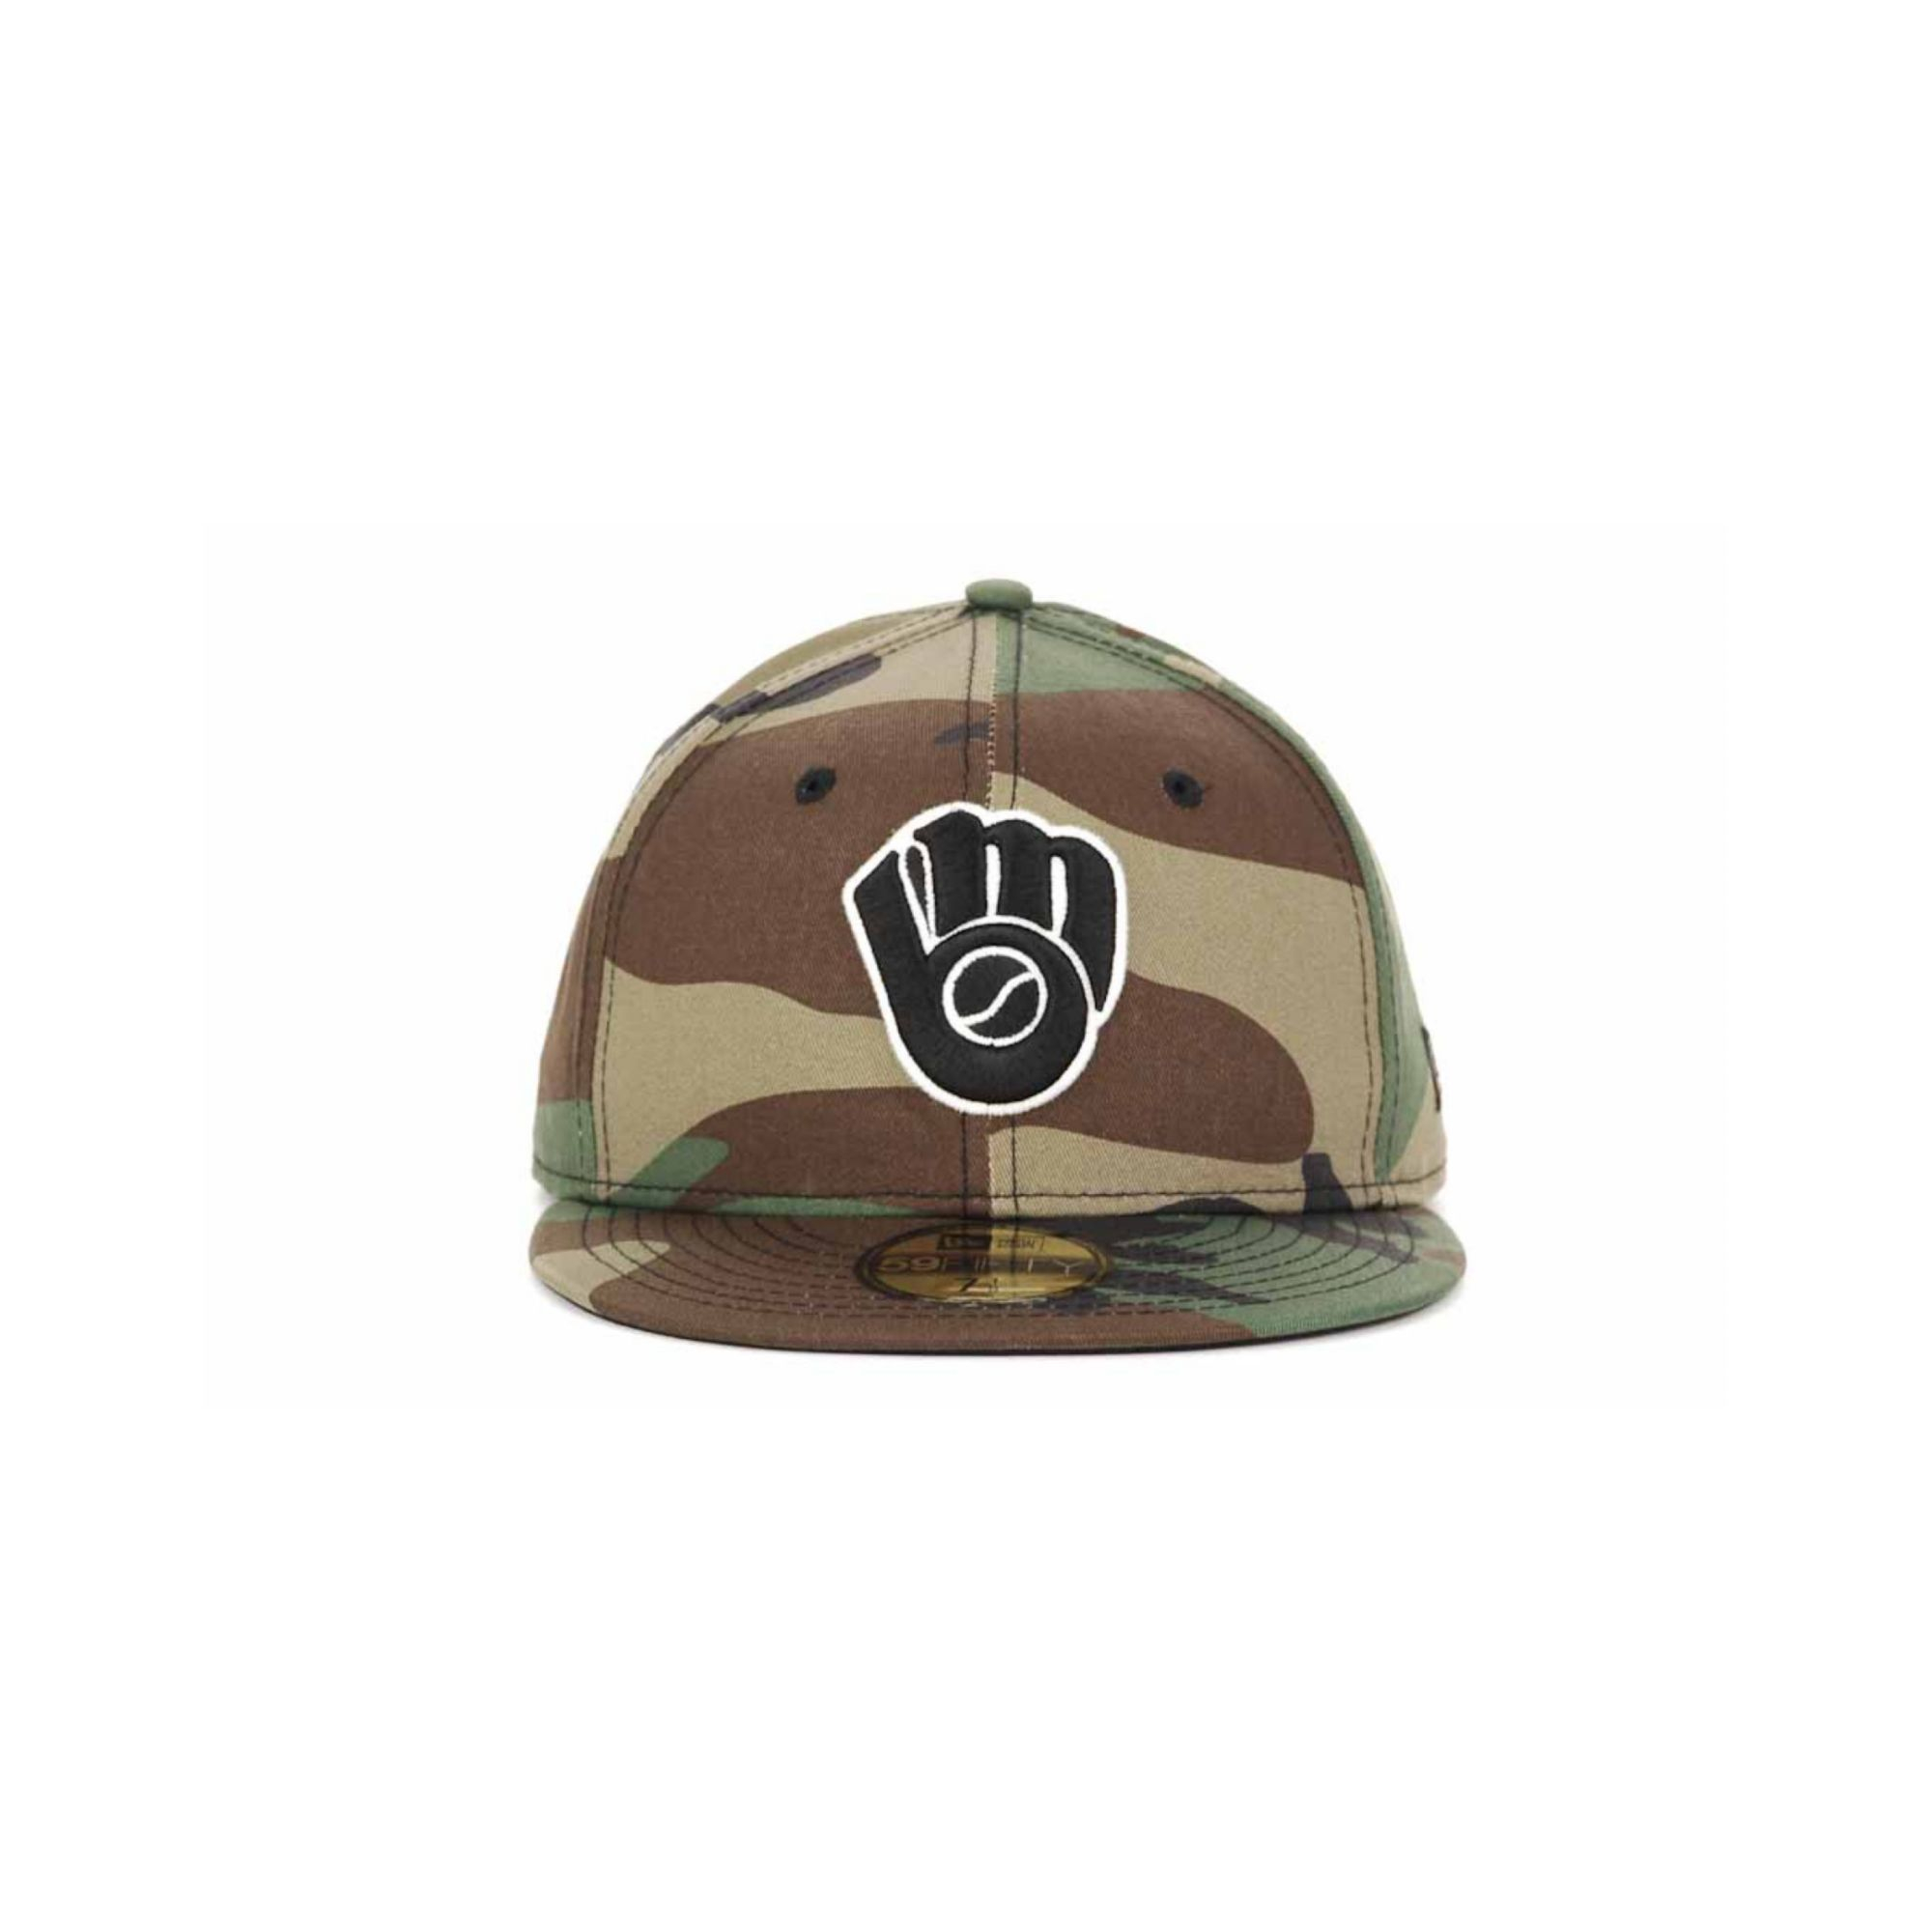 sports shoes 4ea44 a8a98 authentic lyst ktz milwaukee brewers camo 59fifty cap in green for men  a31d6 f3ce7